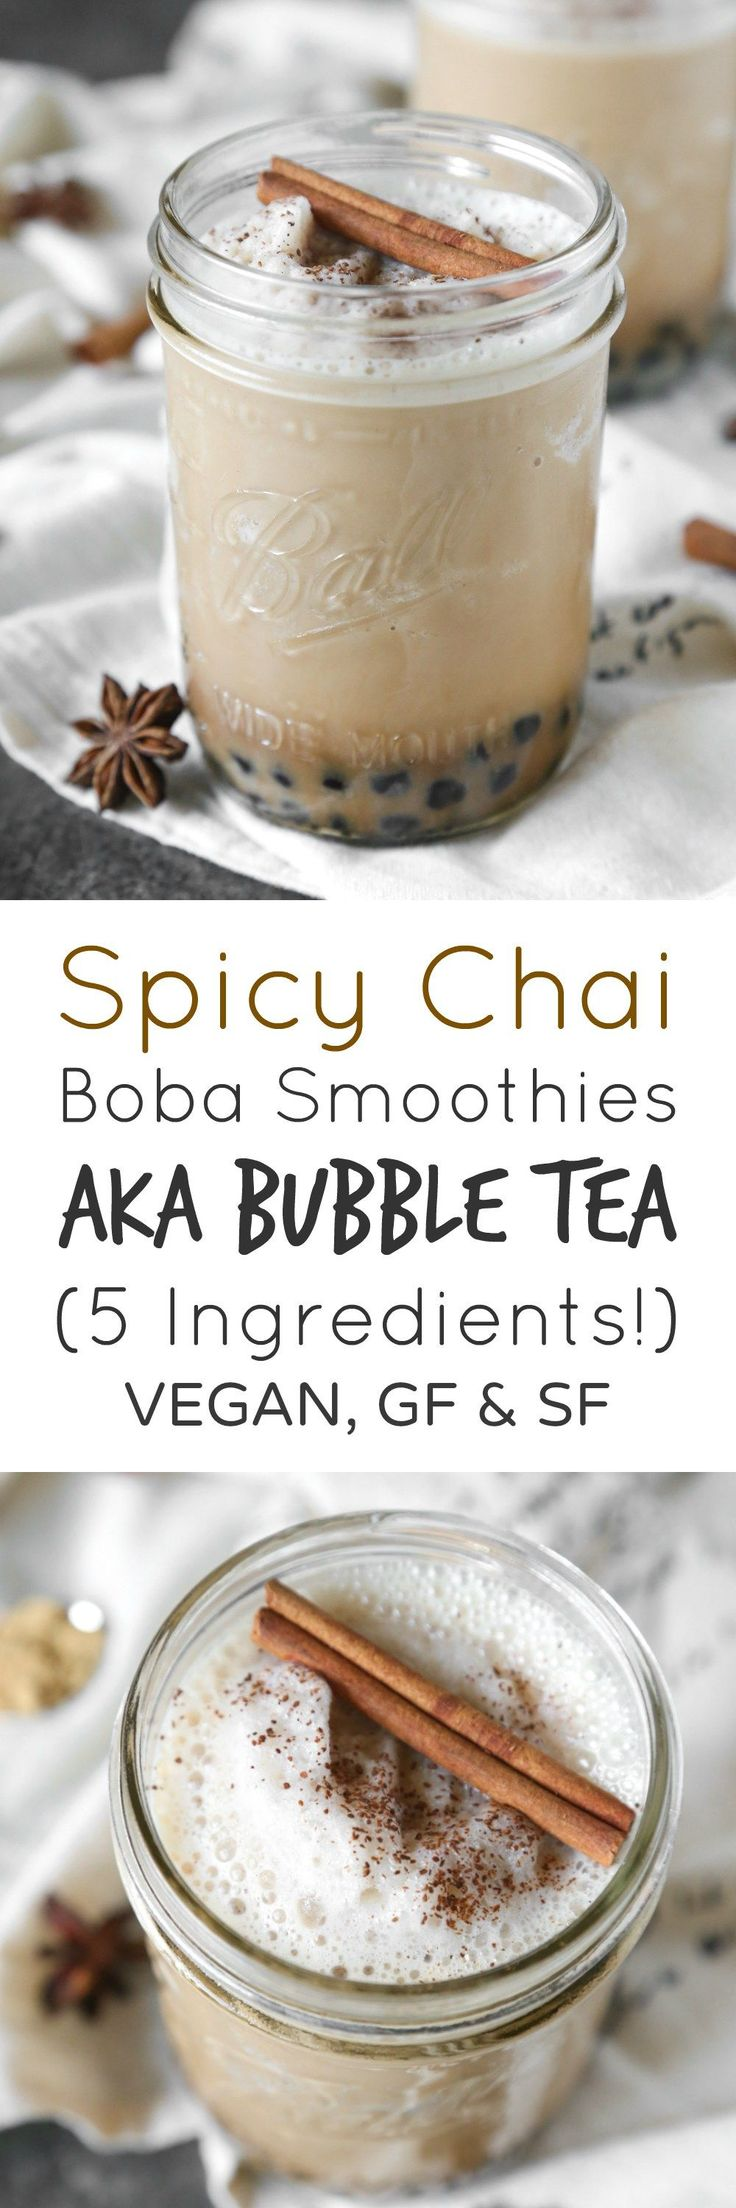 Spicy Chai Boba Smoothies aka Bubble Tea | Vegan, Gluten-Free, Sugar-Free | The Plant Philosophy